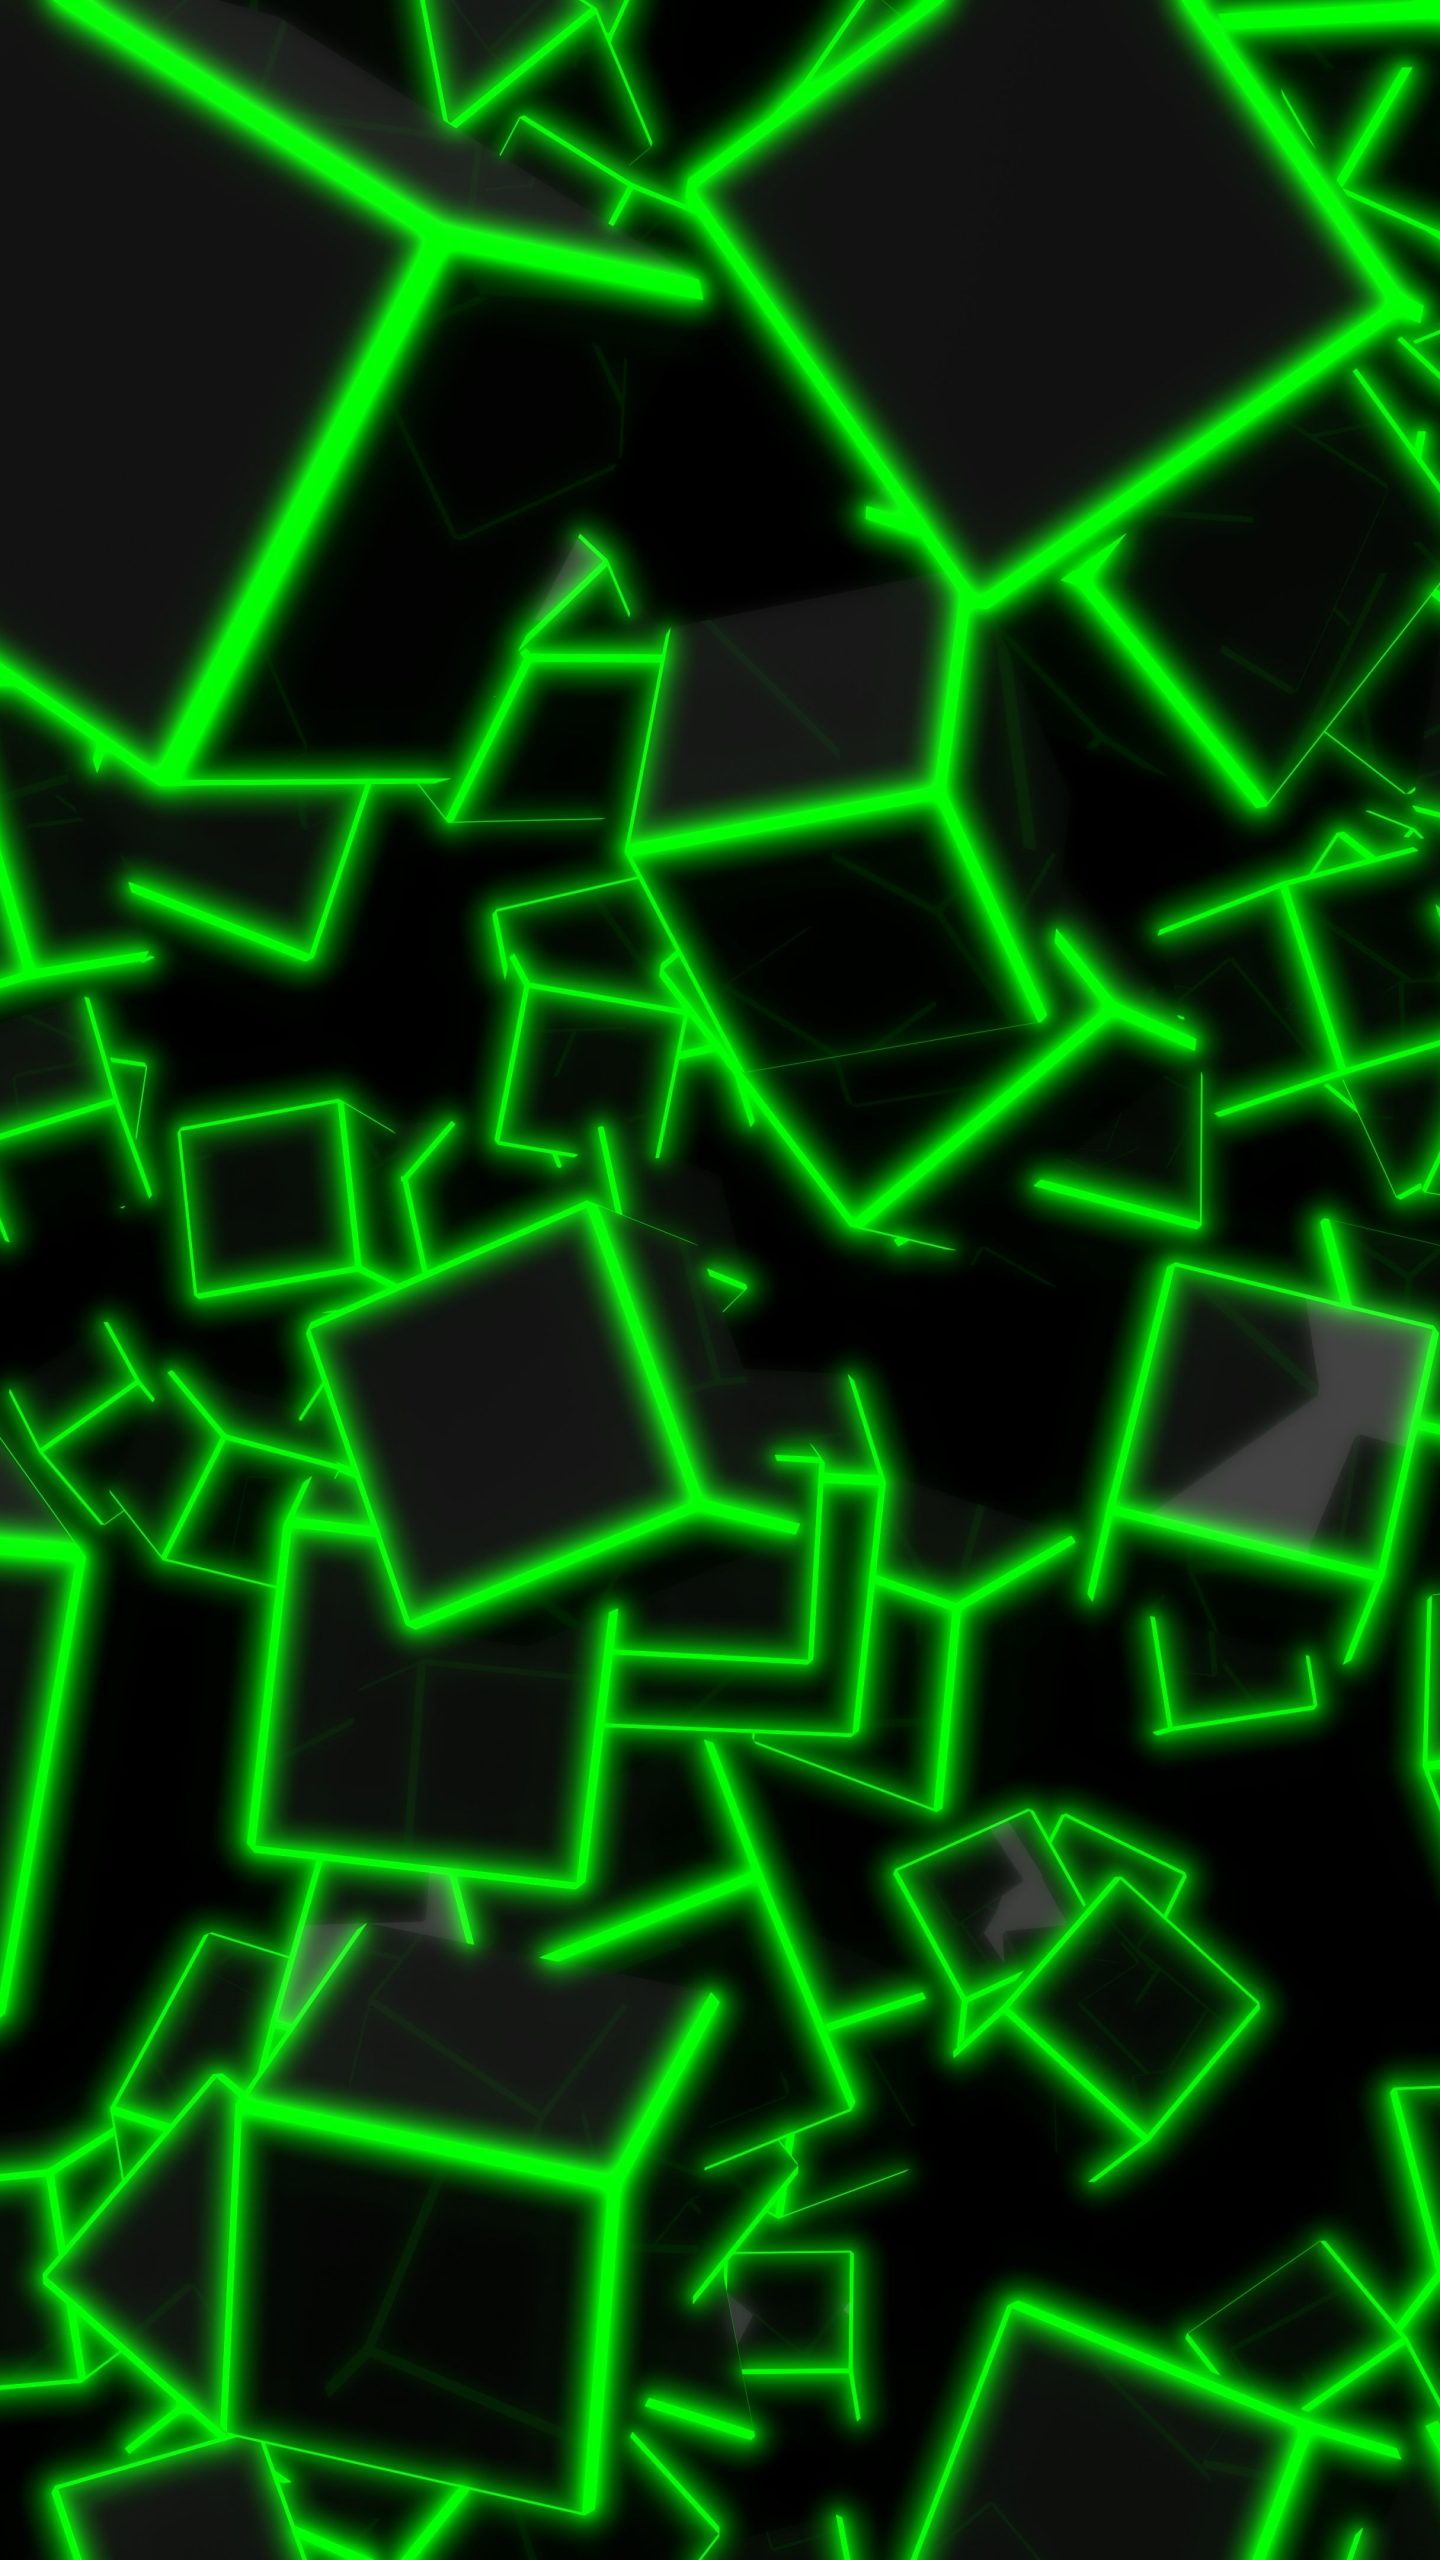 3d Laser Wallpapers 3d Green Neon Cubes 8k Uhd Wallpaper Hd Wallpaper